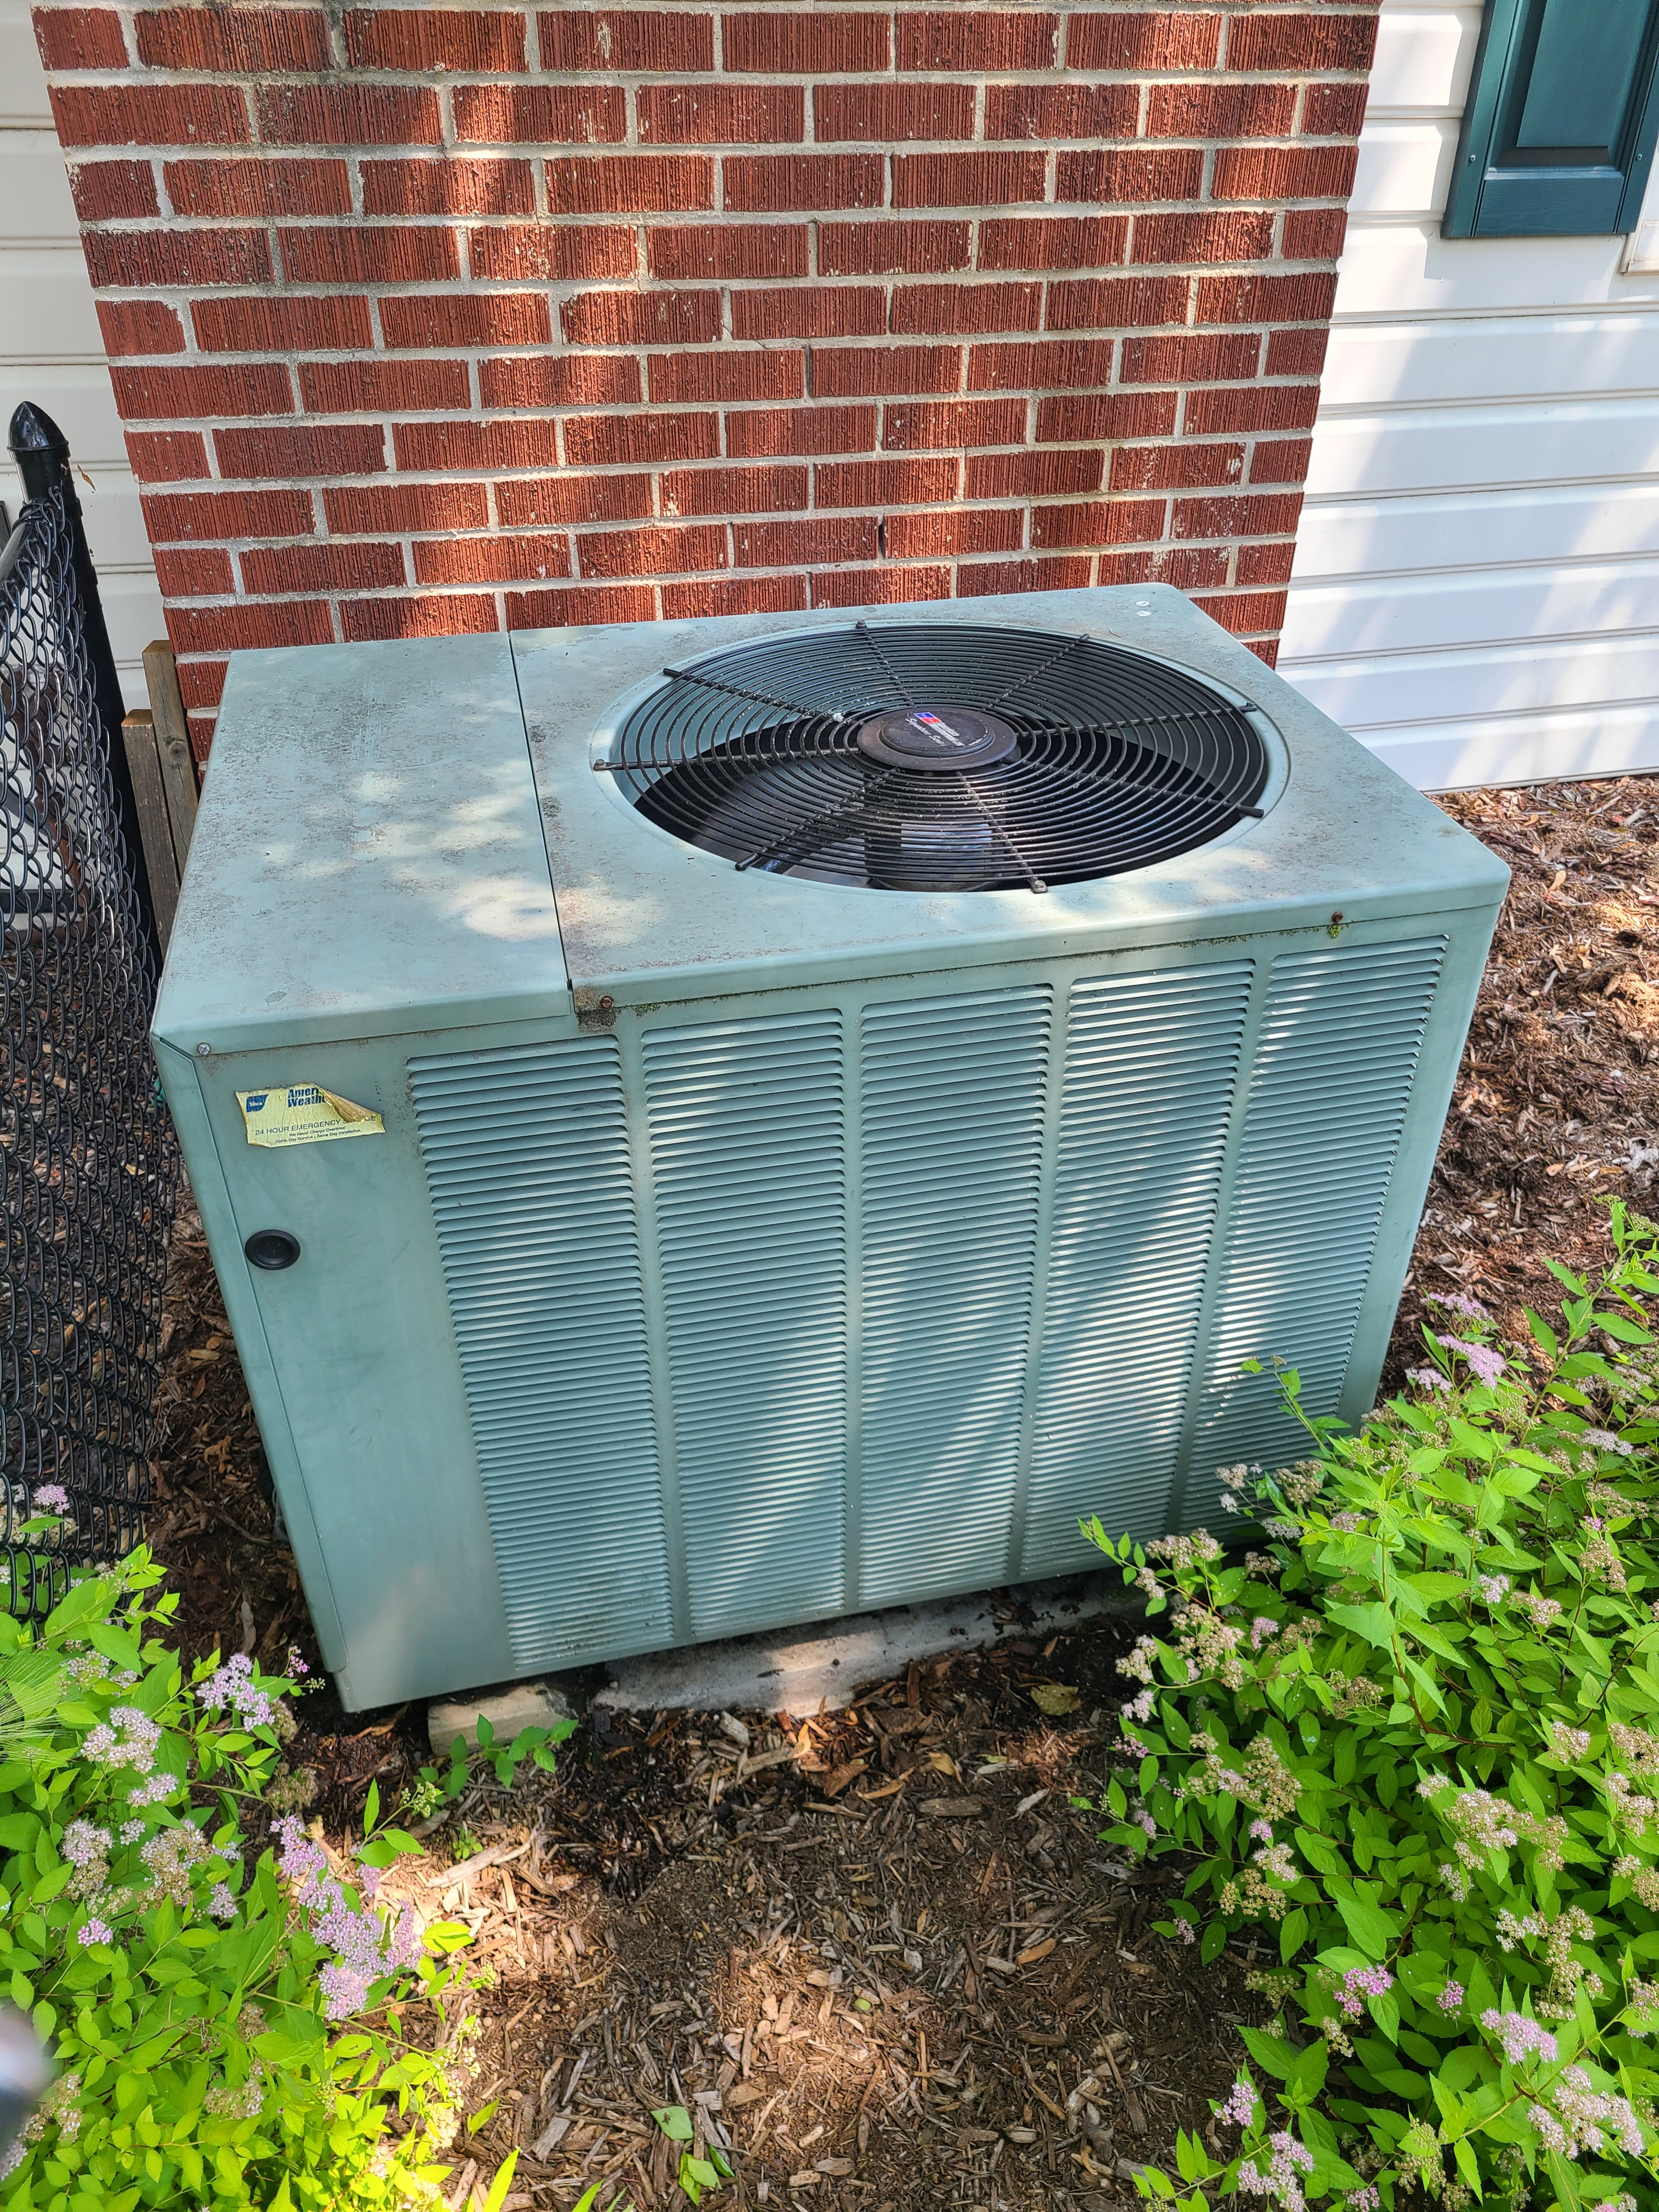 Rheem summer ac clean and check. System tuned up and ready for summer.